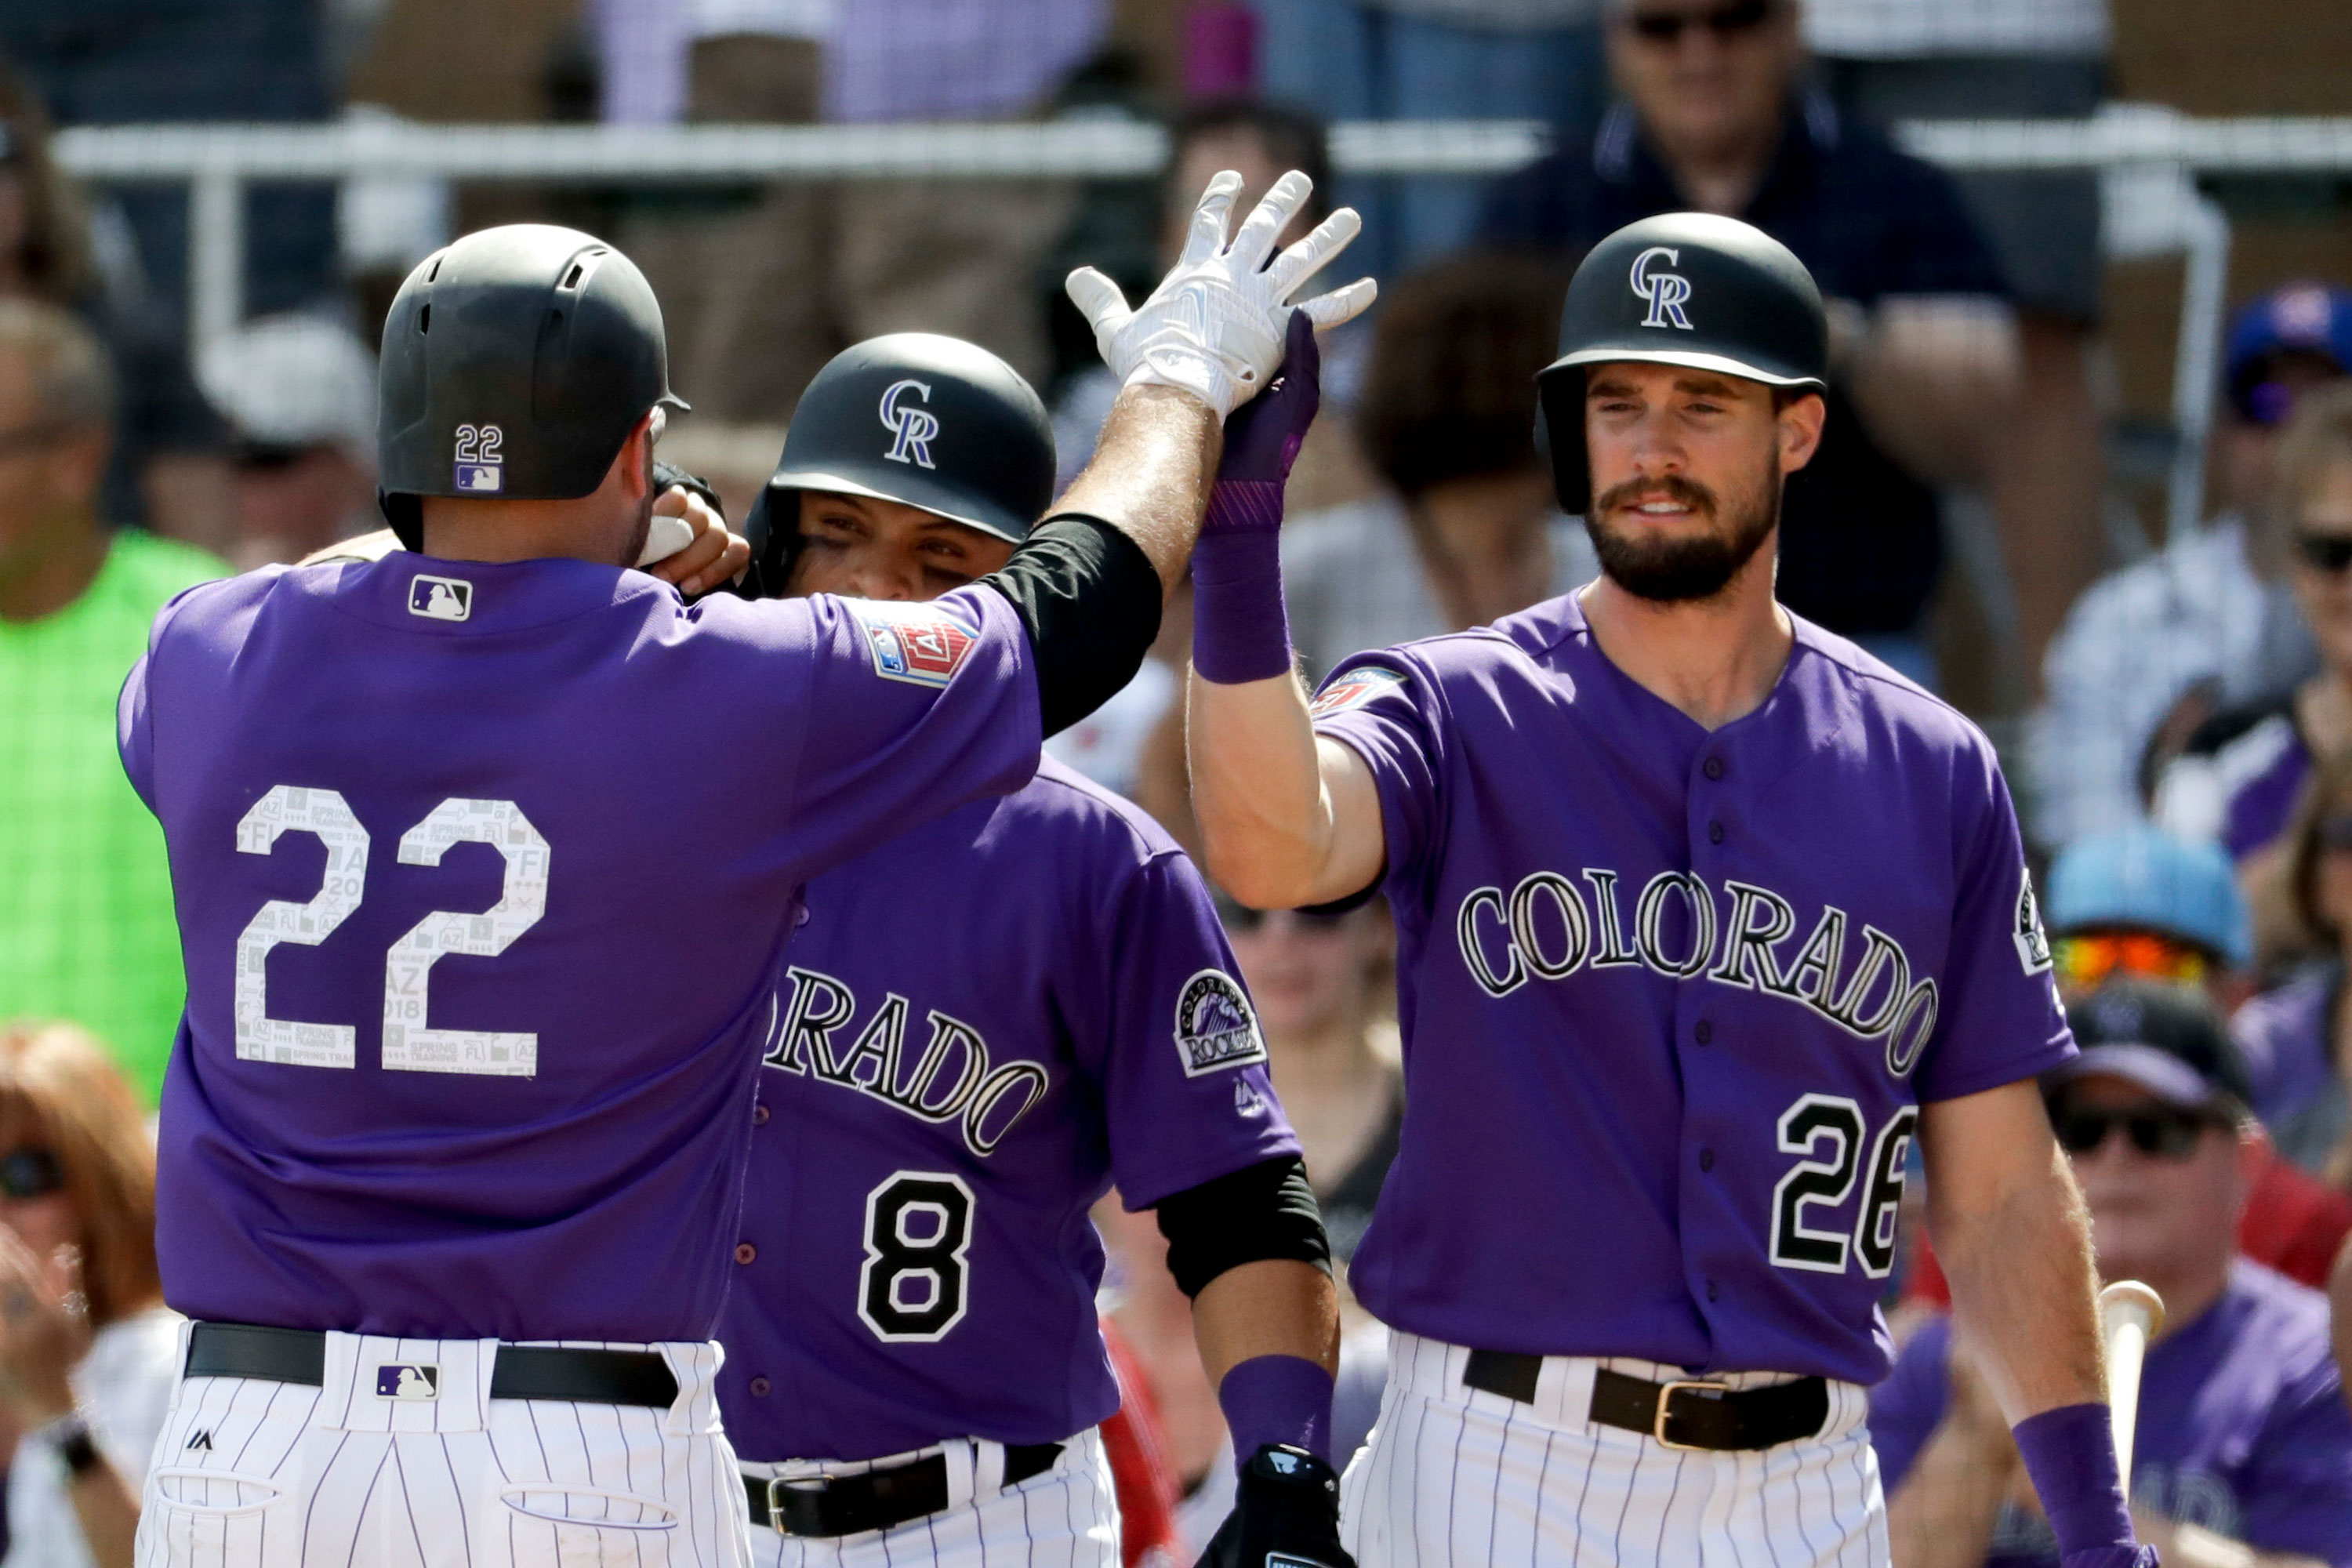 <p>Colorado Rockies' Chris Iannetta, left, celebrates after his two-run home run with David Dahl, right, and Gerardo Parra during the second inning of a spring baseball game against the Los Angeles Dodgers in Scottsdale, Ariz., March 11, 2018.</p>